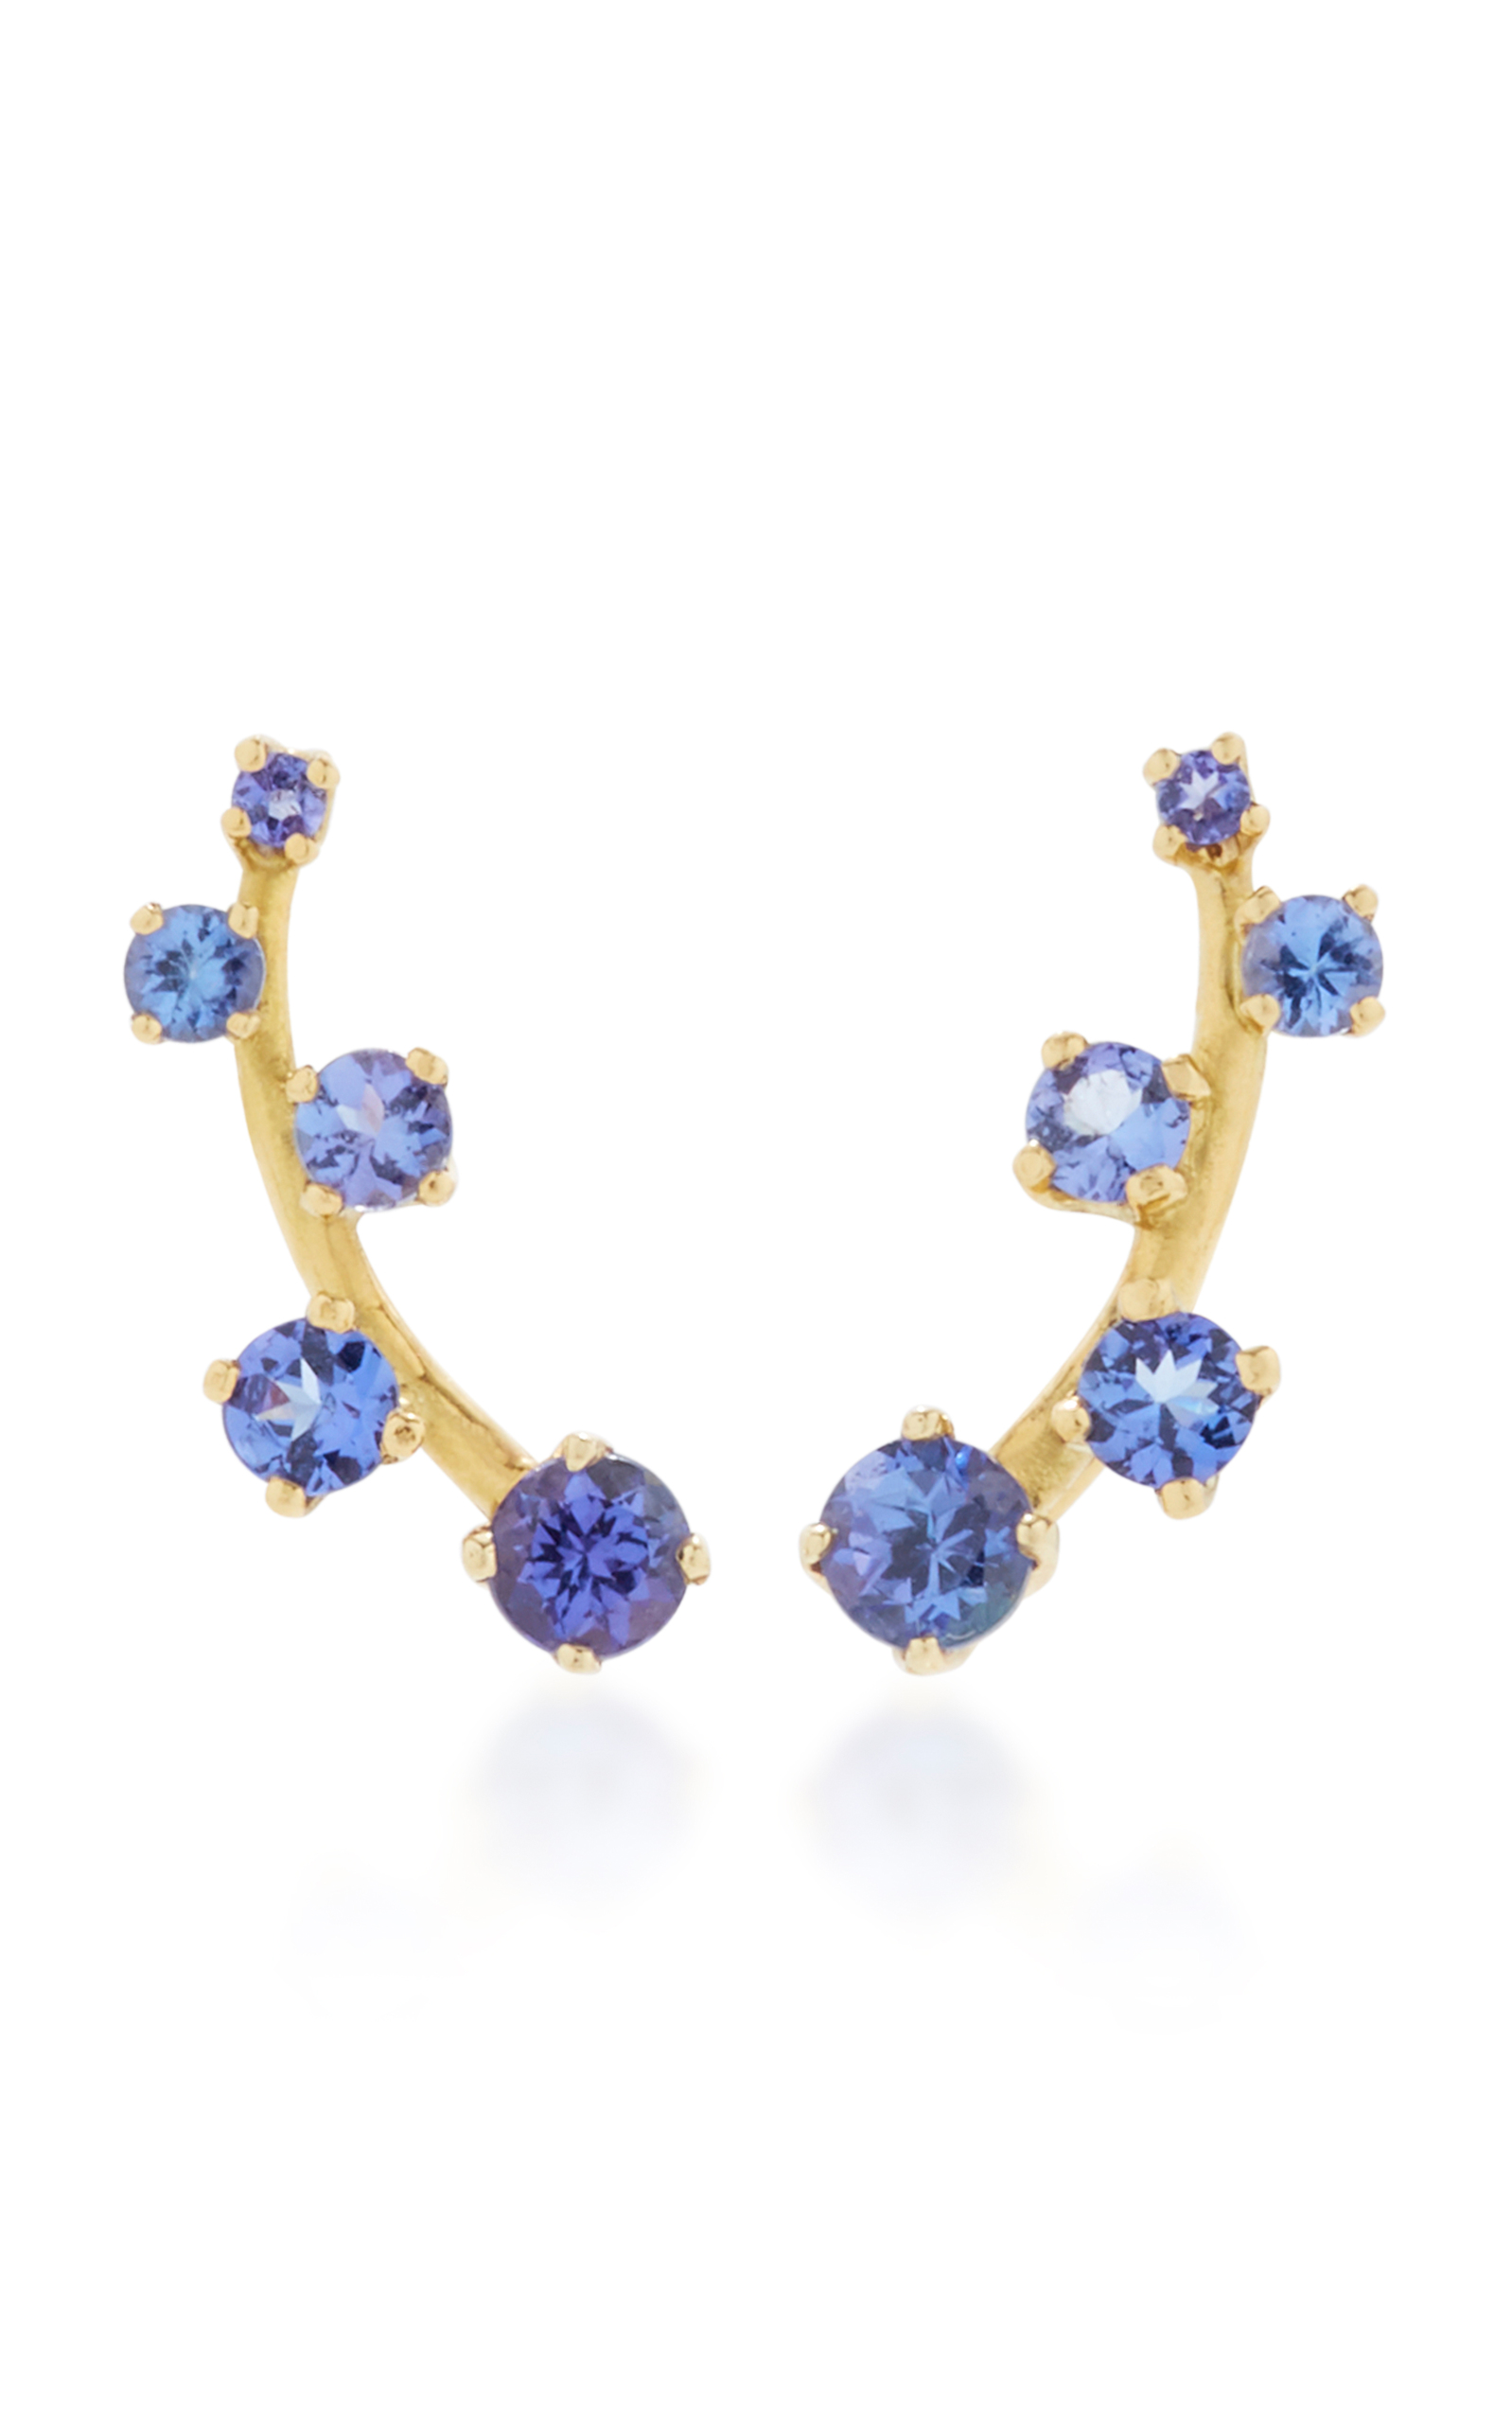 jimmy swarovski jules earrings tanzanite london droplet